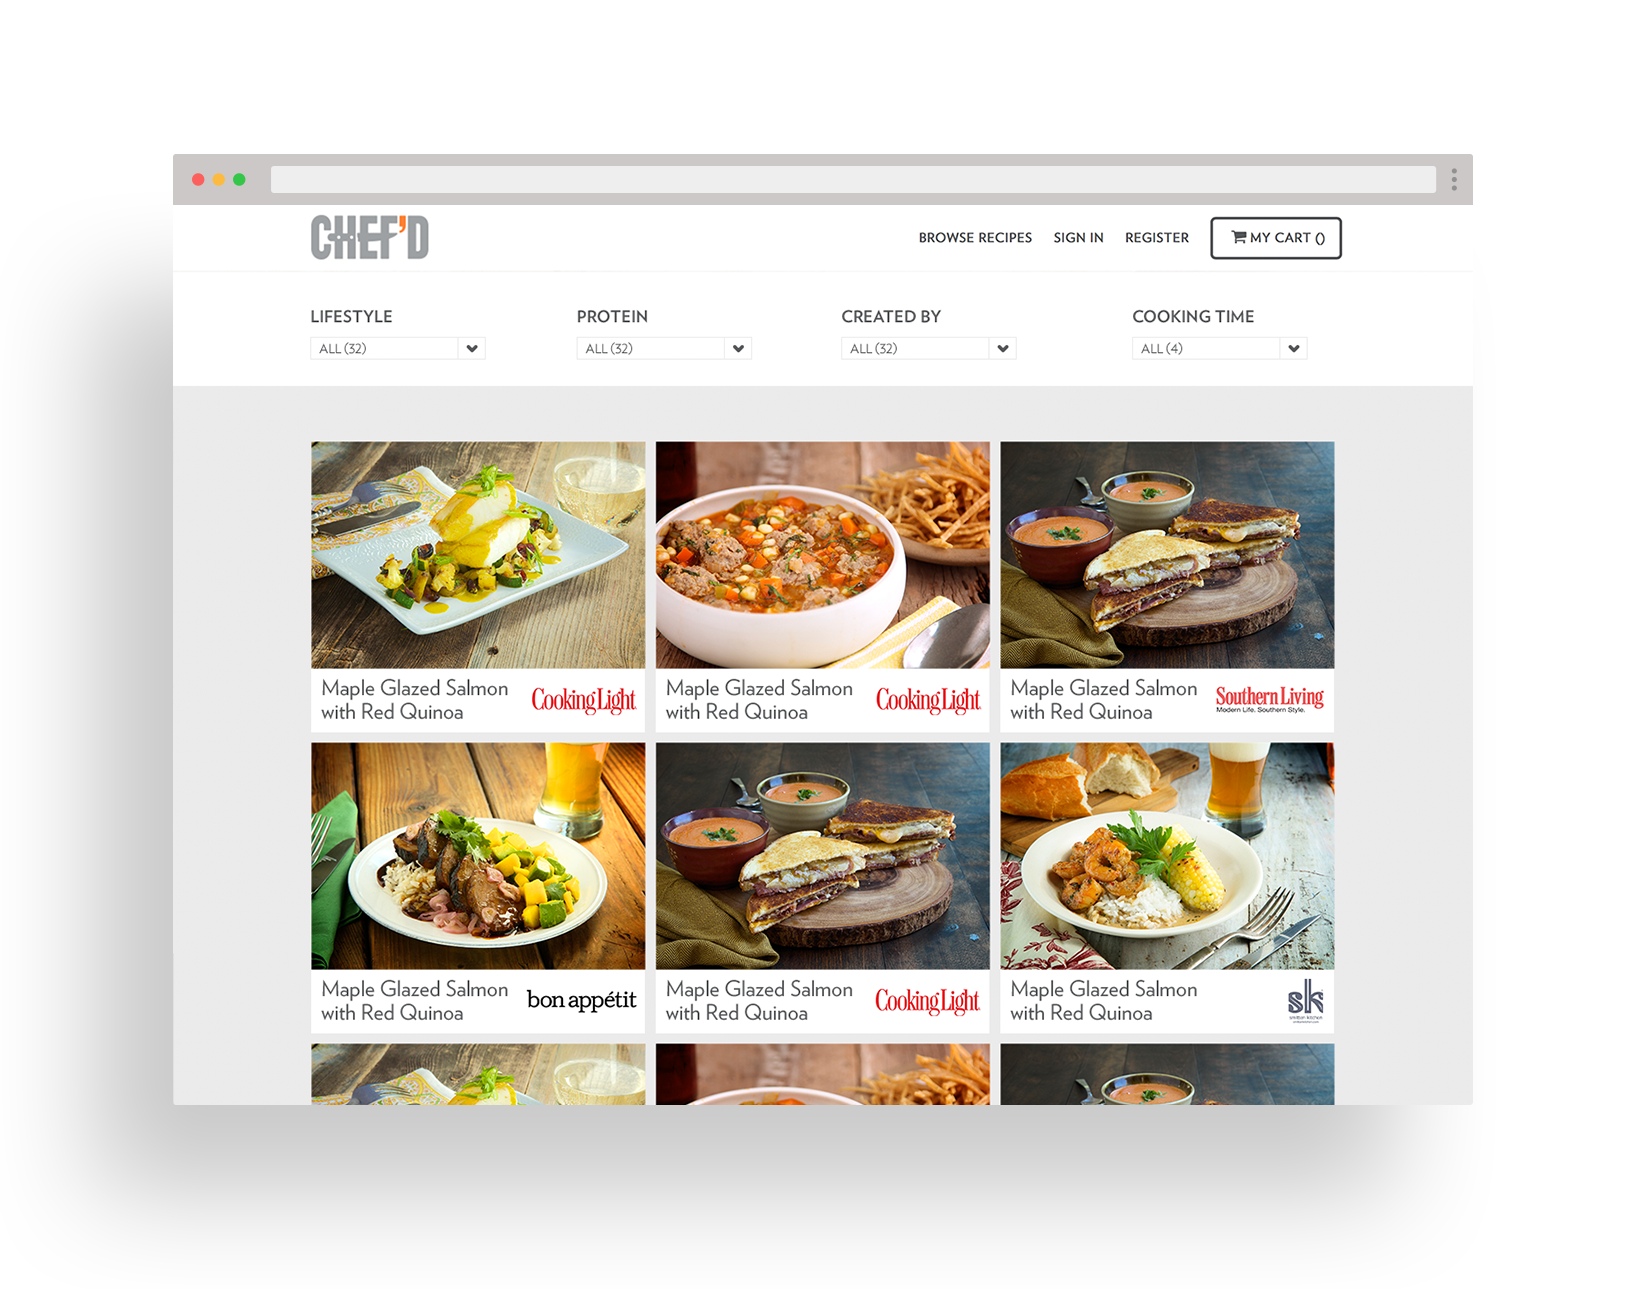 chefd-browser-2.png